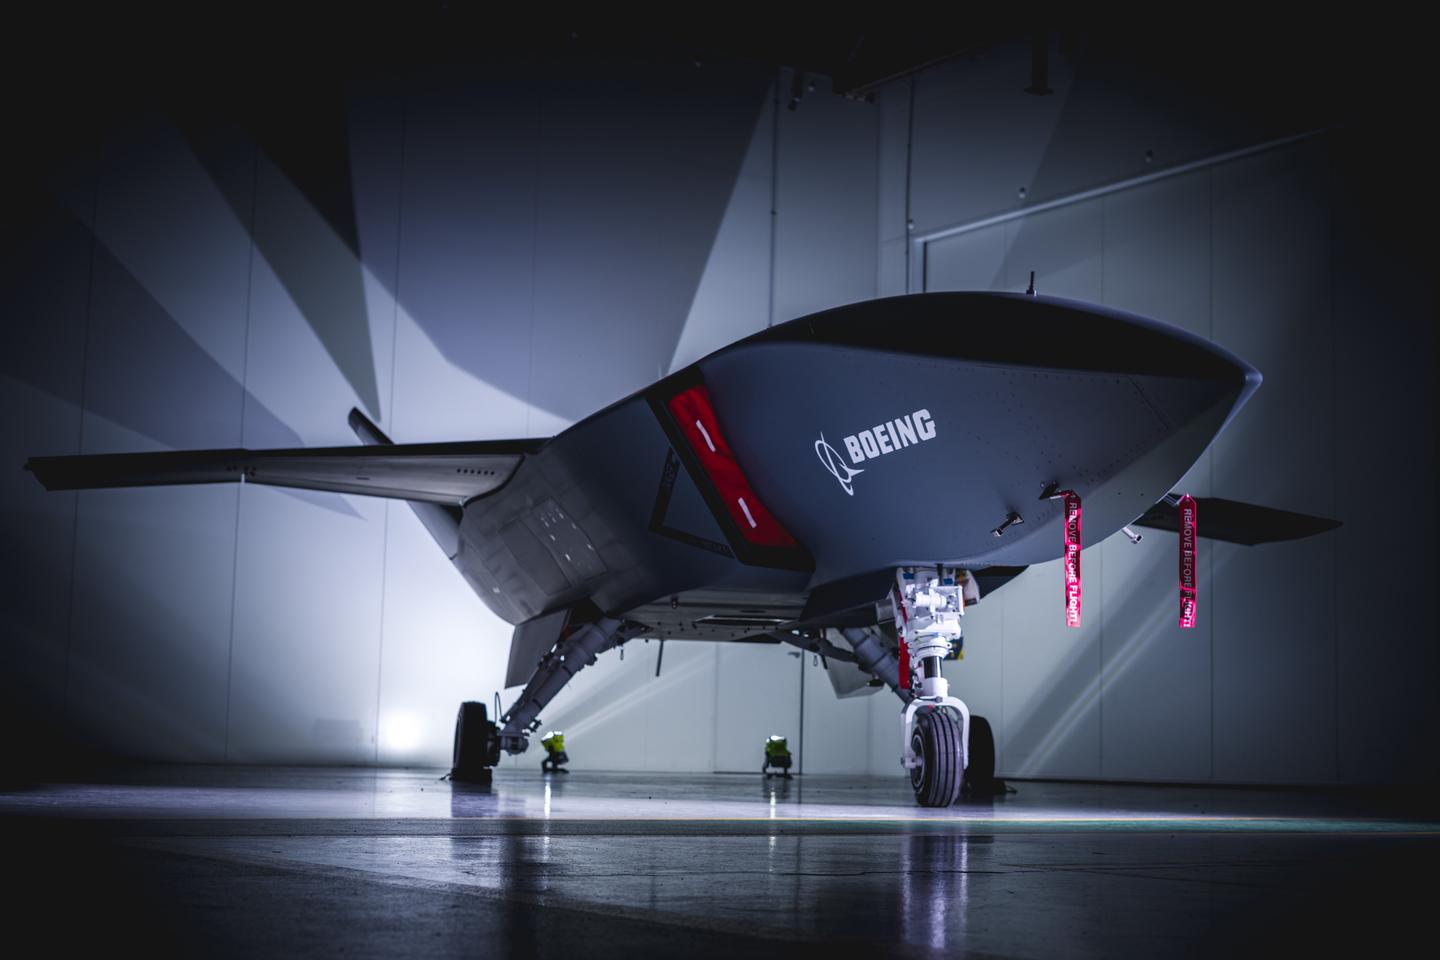 Boeing Australia has built the first of three Loyal Wingman aircraft prototypes, which will serve as the foundation for the Boeing Airpower Teaming System being developed for the global defense market